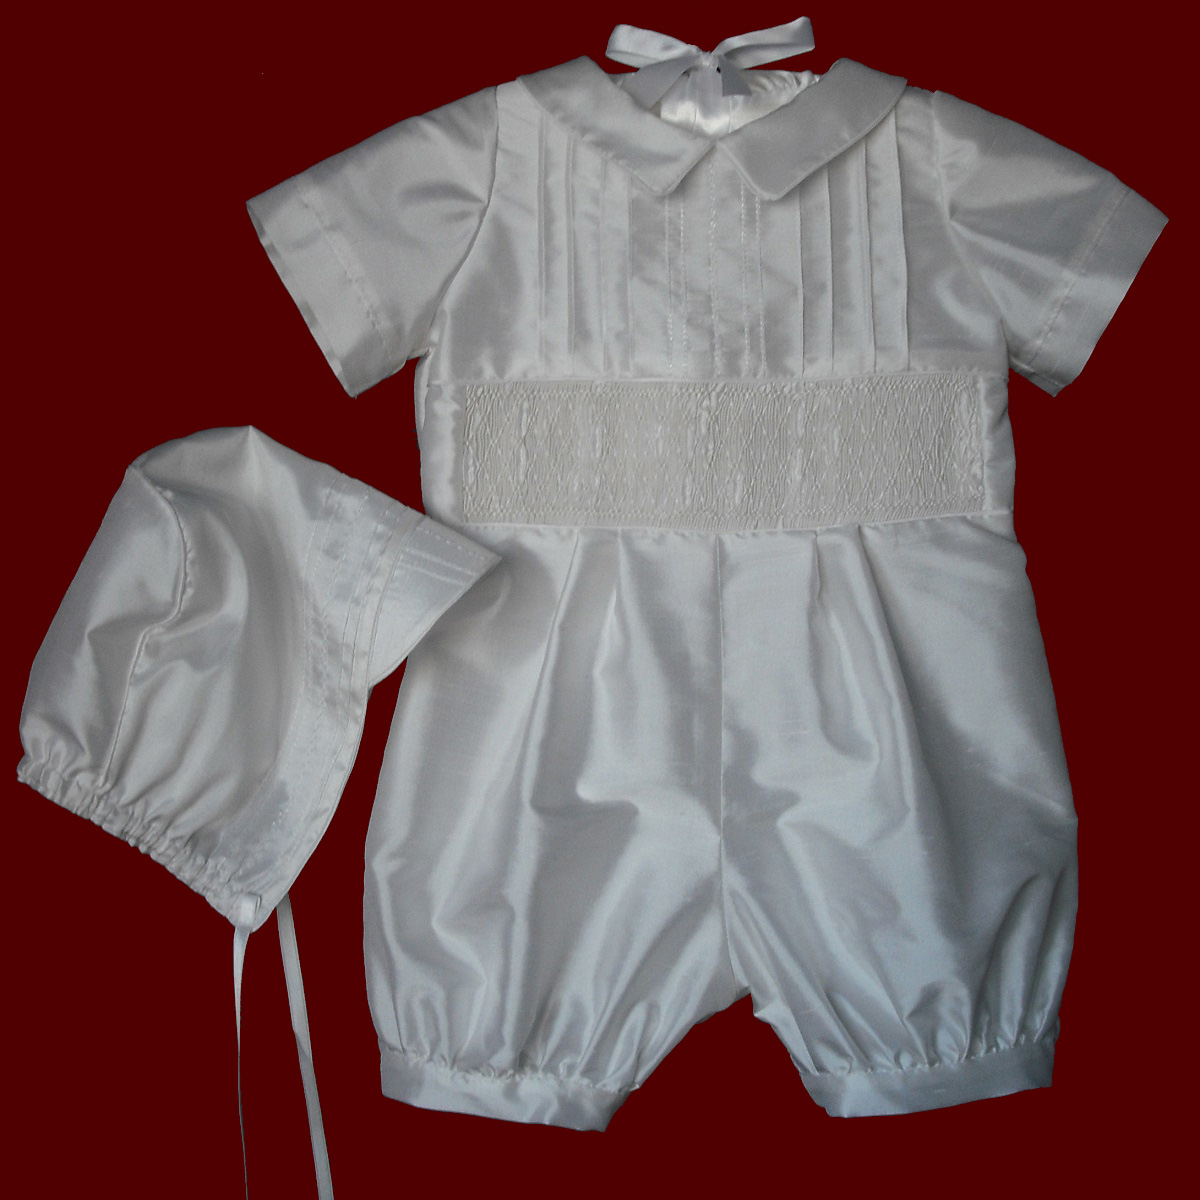 acd44b47d873 Click to Enlarge   View Additional Pictures. Boys Christening Romper With  Hand Smocked Insert   Hat. All White Cotton ...